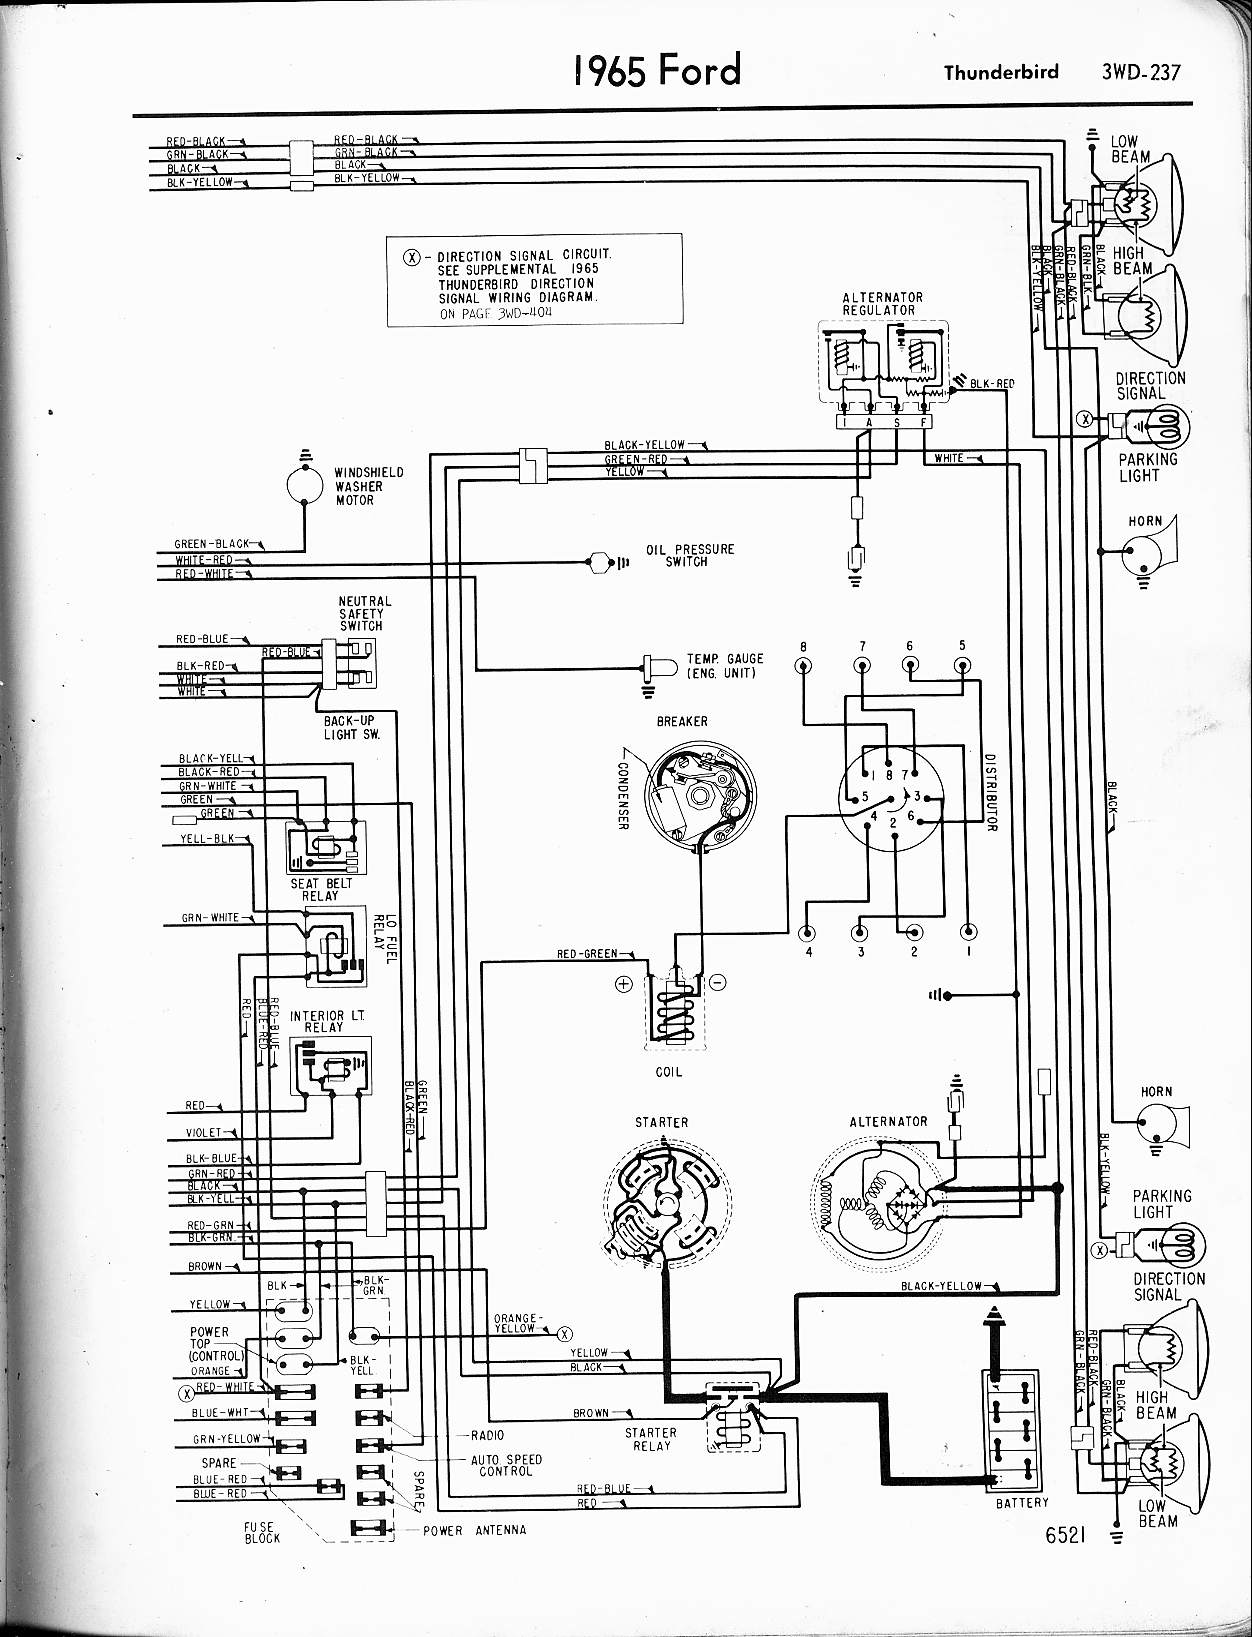 MWire5765 237 1964 thunderbird wiring diagram 1964 thunderbird stereo wiring 1965 ford alternator wiring diagram at soozxer.org